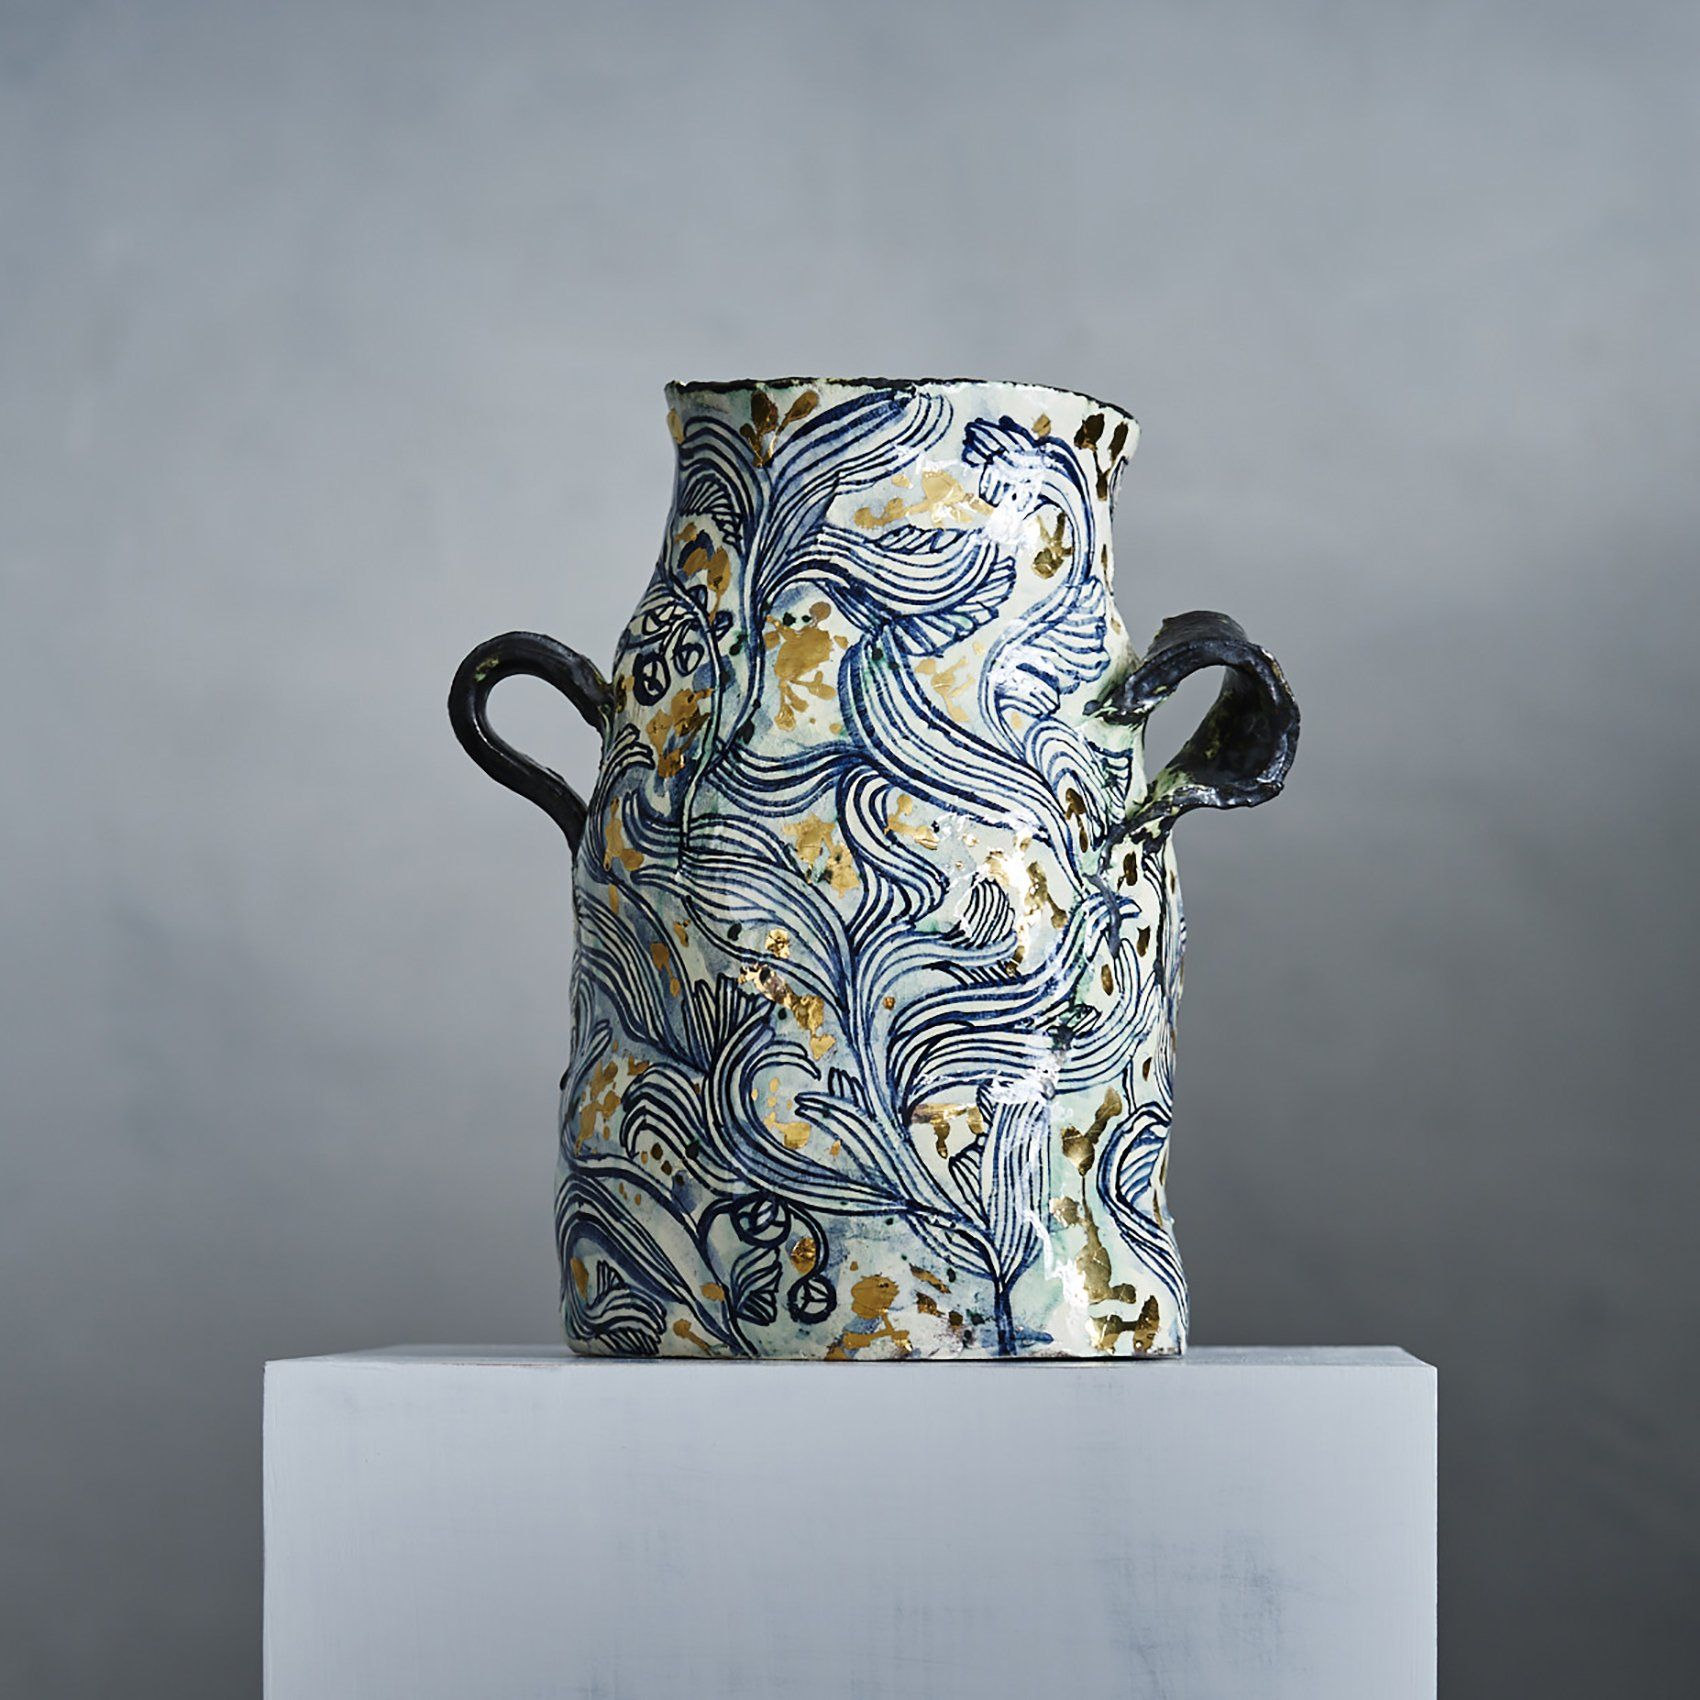 A Ceramicist And Painter From Johannesburg South Africa Hoffman Has Been Working With Ceramics For The Past 20 Years Utlizing The T Vase Ceramic Vase Ceramics